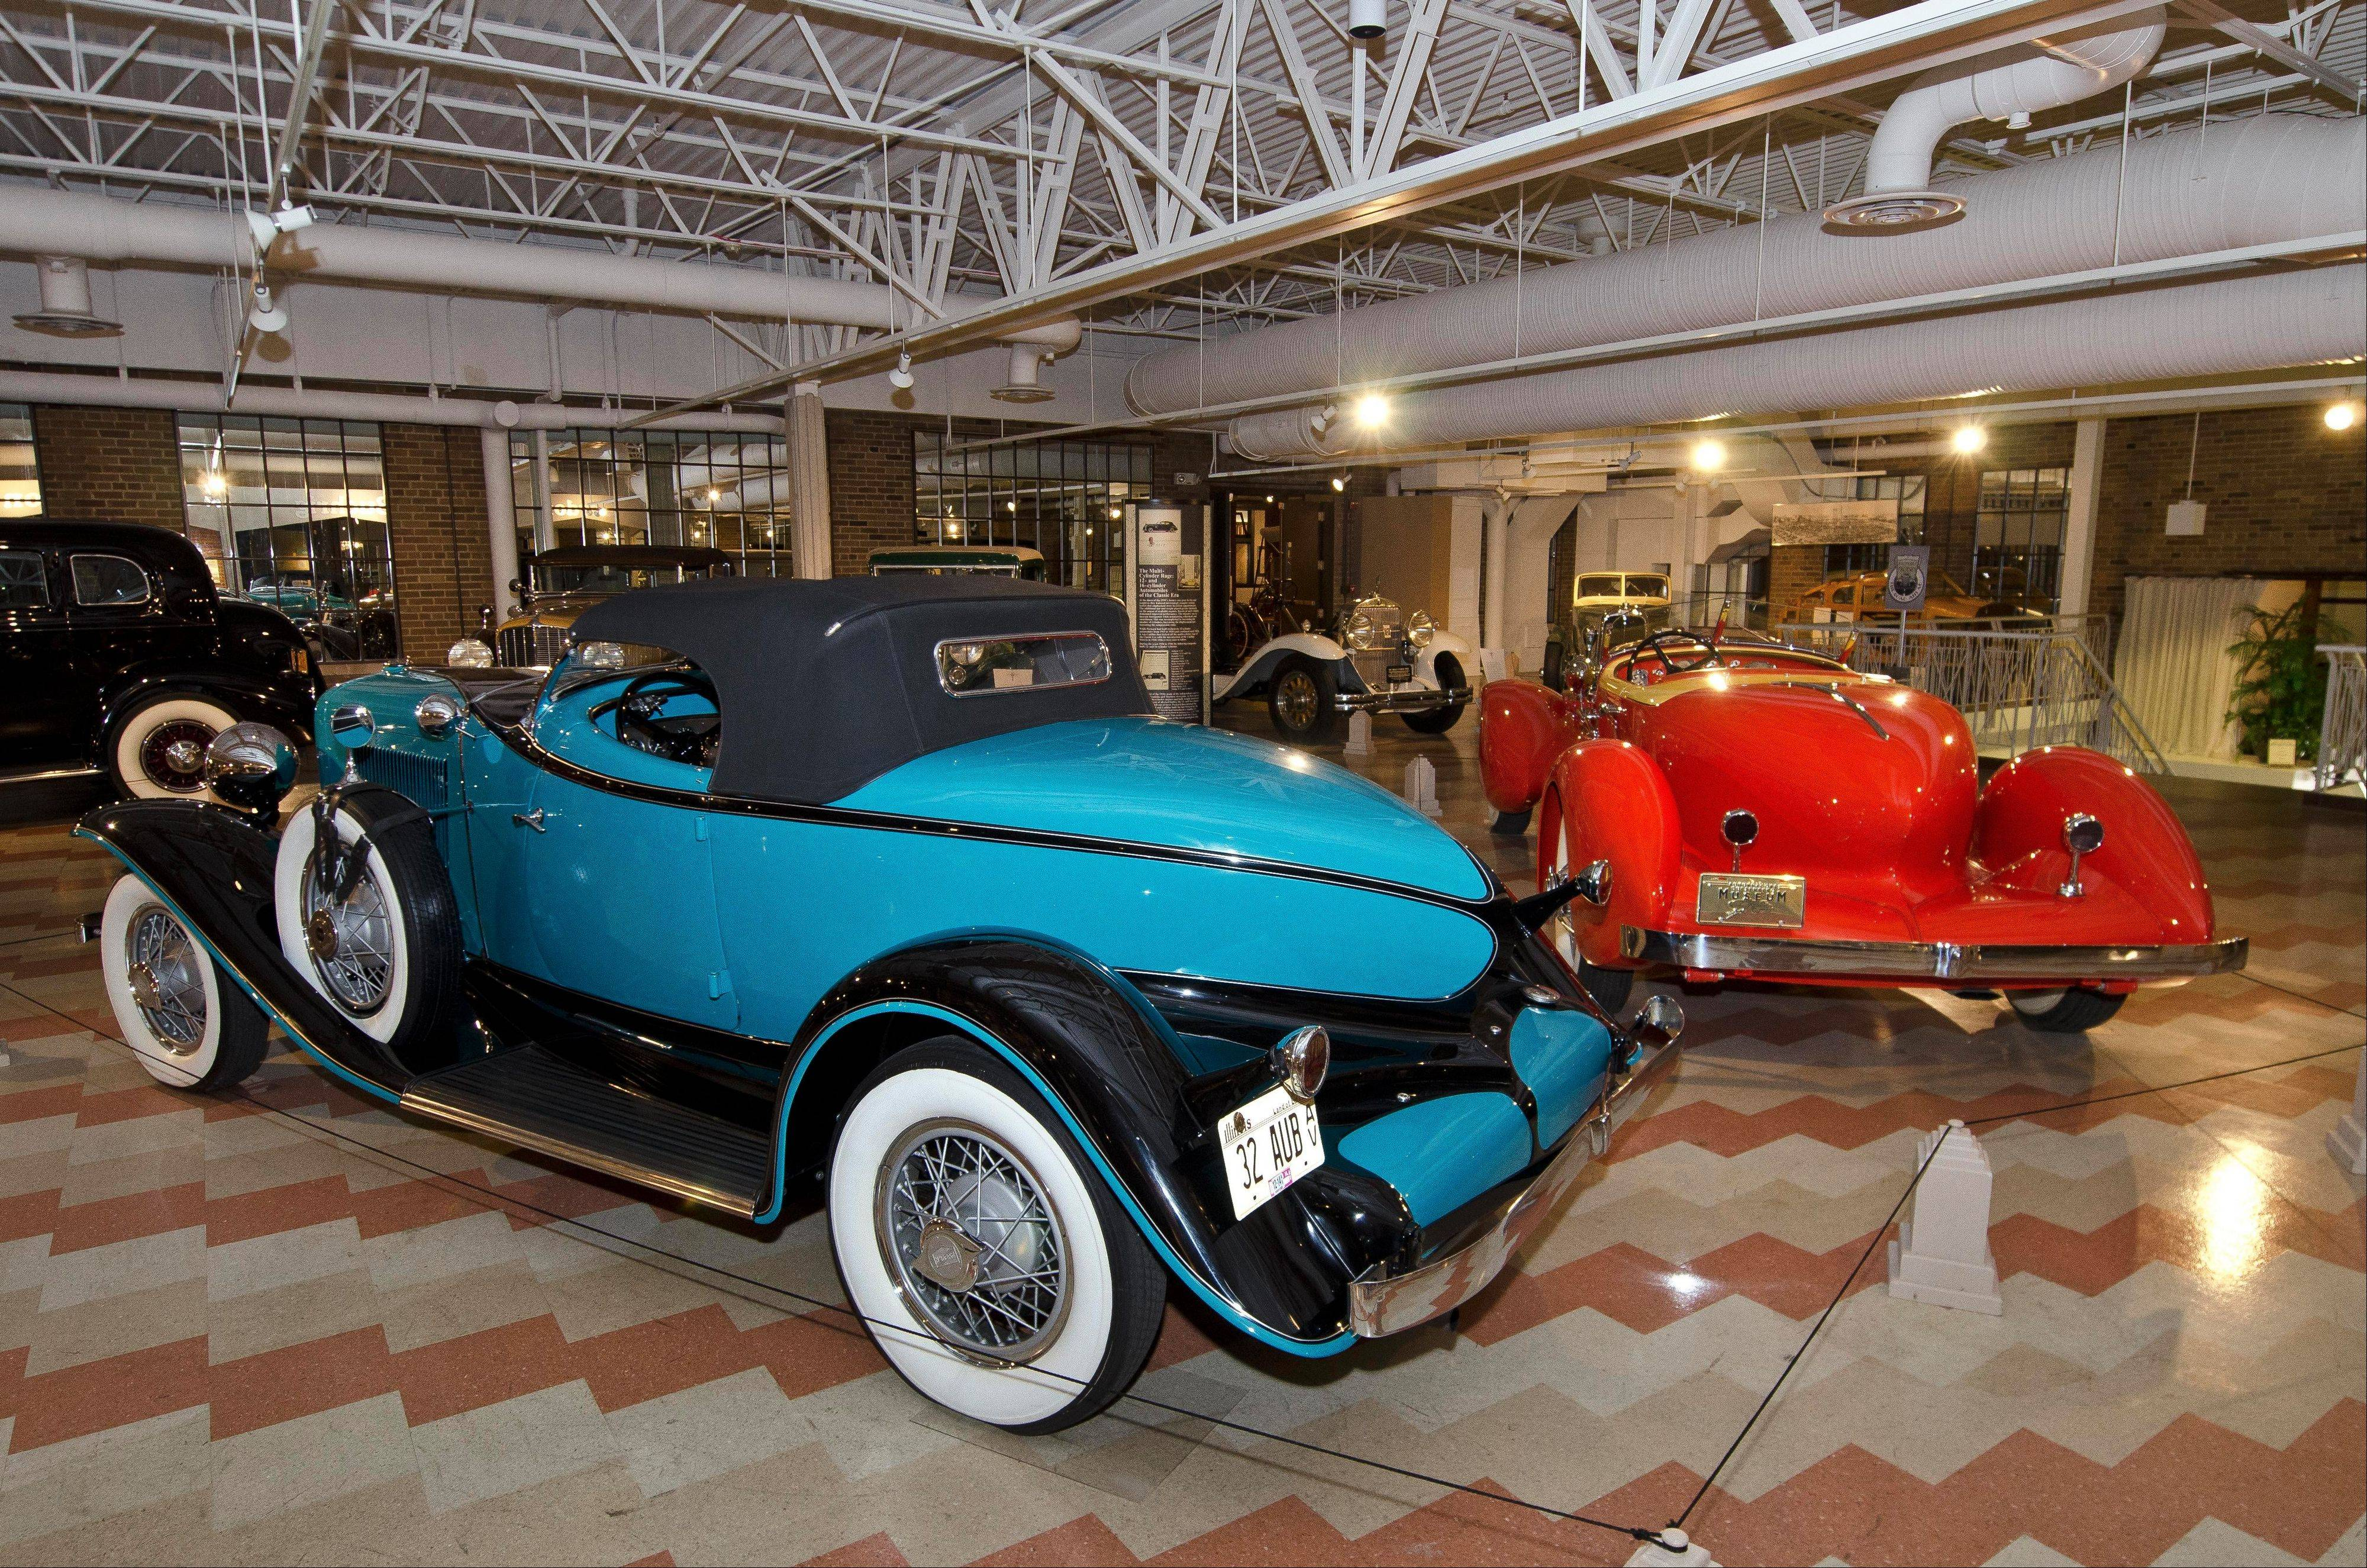 About 120 Auburn, Cord and Duesenberg vehicles are in the museum/s permanent collection.